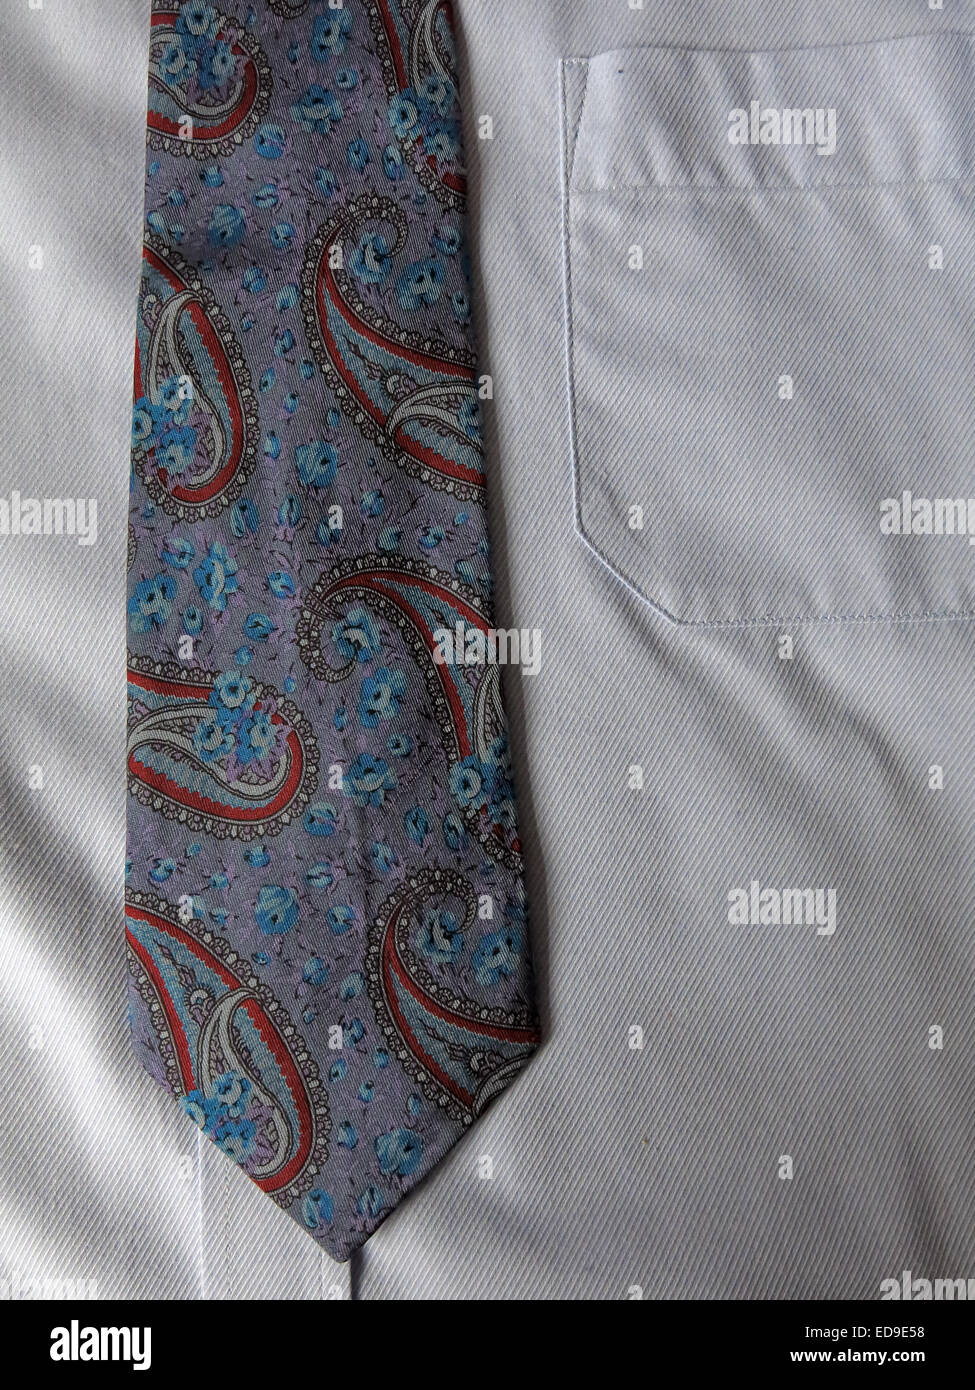 Paisley Tie High Resolution Stock Photography And Images Alamy